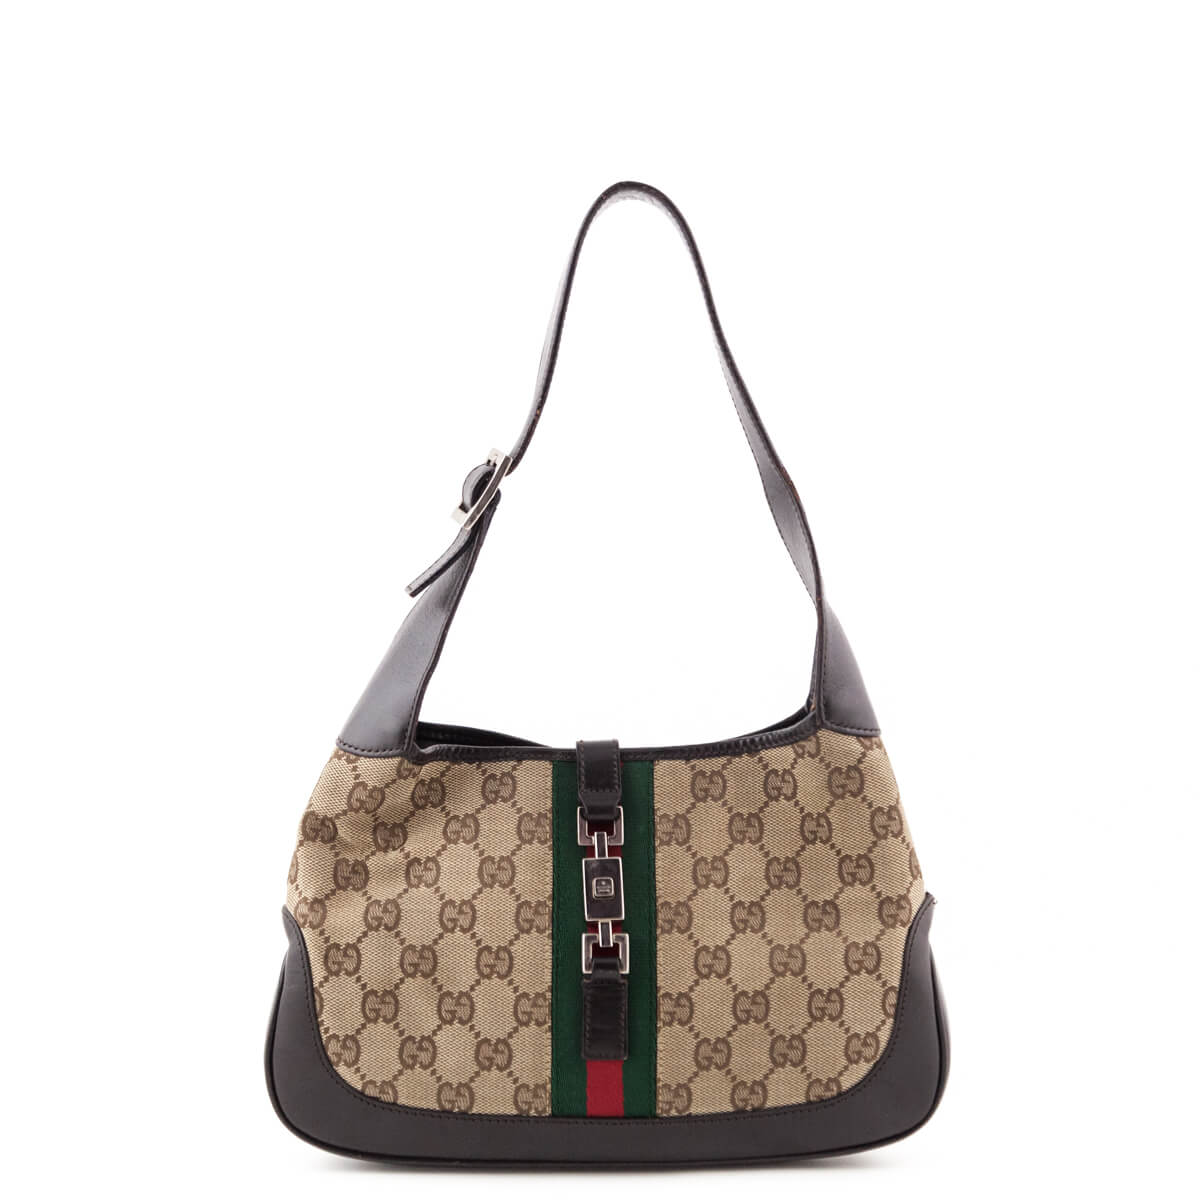 c877816a381bd9 Gucci Monogram Canvas Small Web Jackie Handbag - LOVE that BAG - Preowned  Authentic Designer Handbags ...